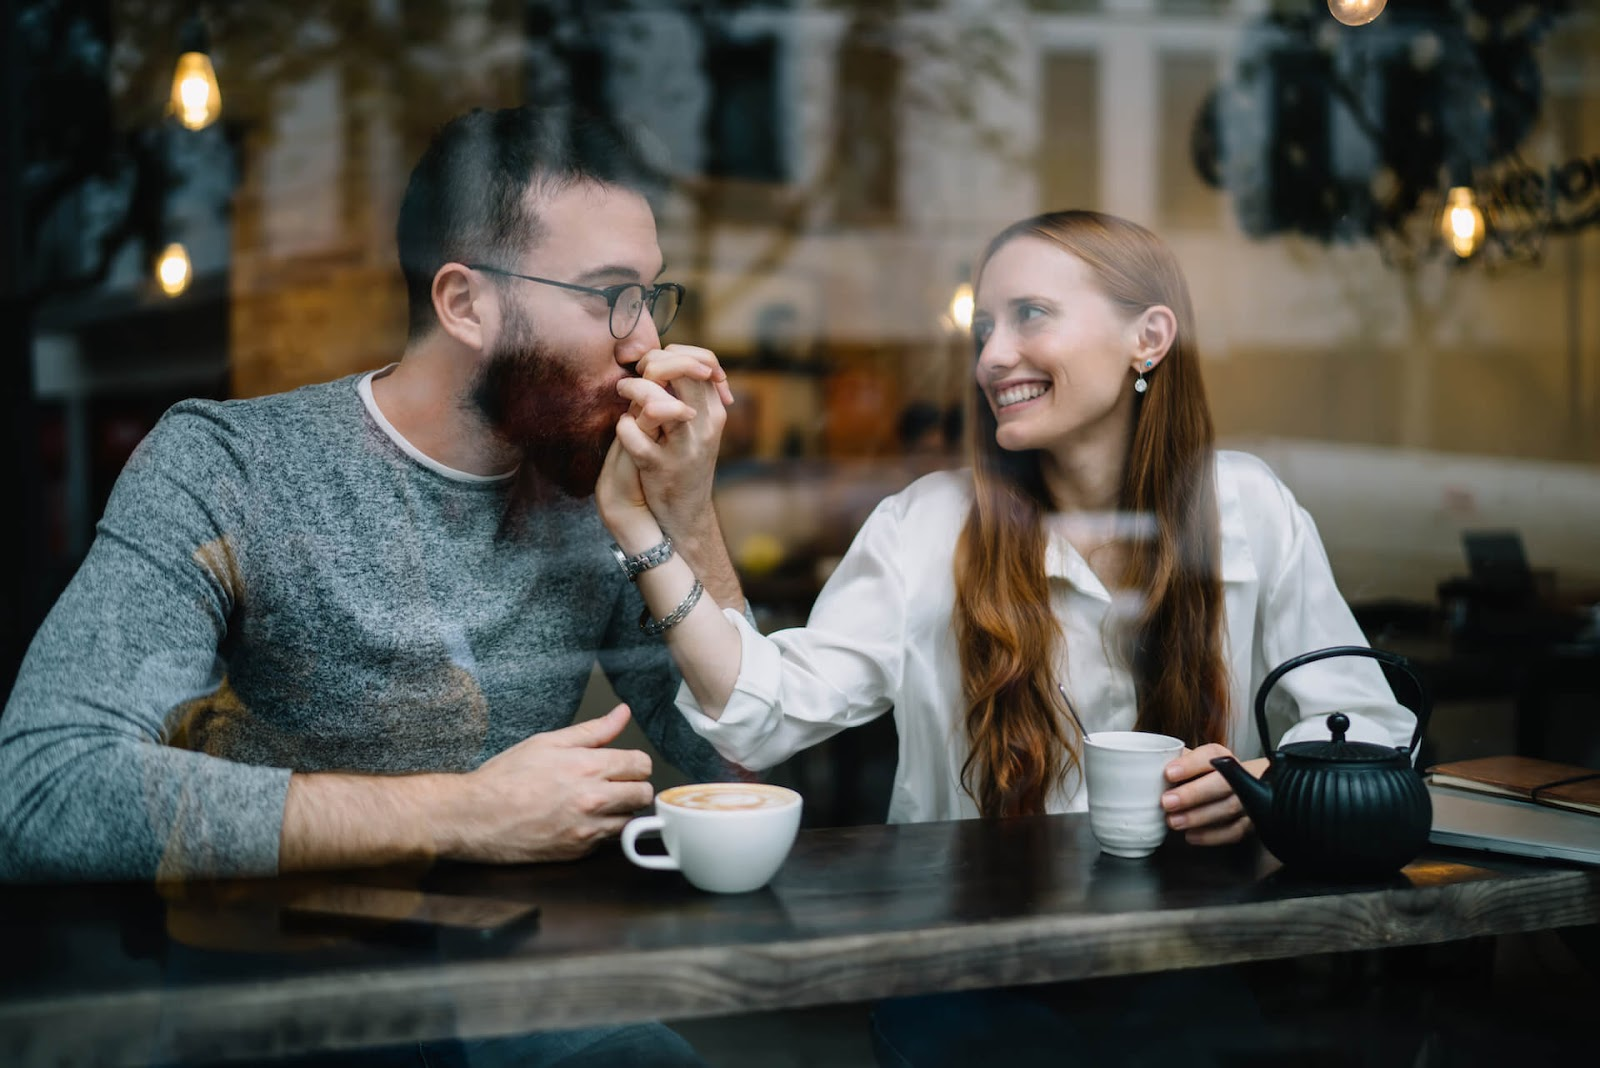 Man kissing woman's hand in a coffee shop